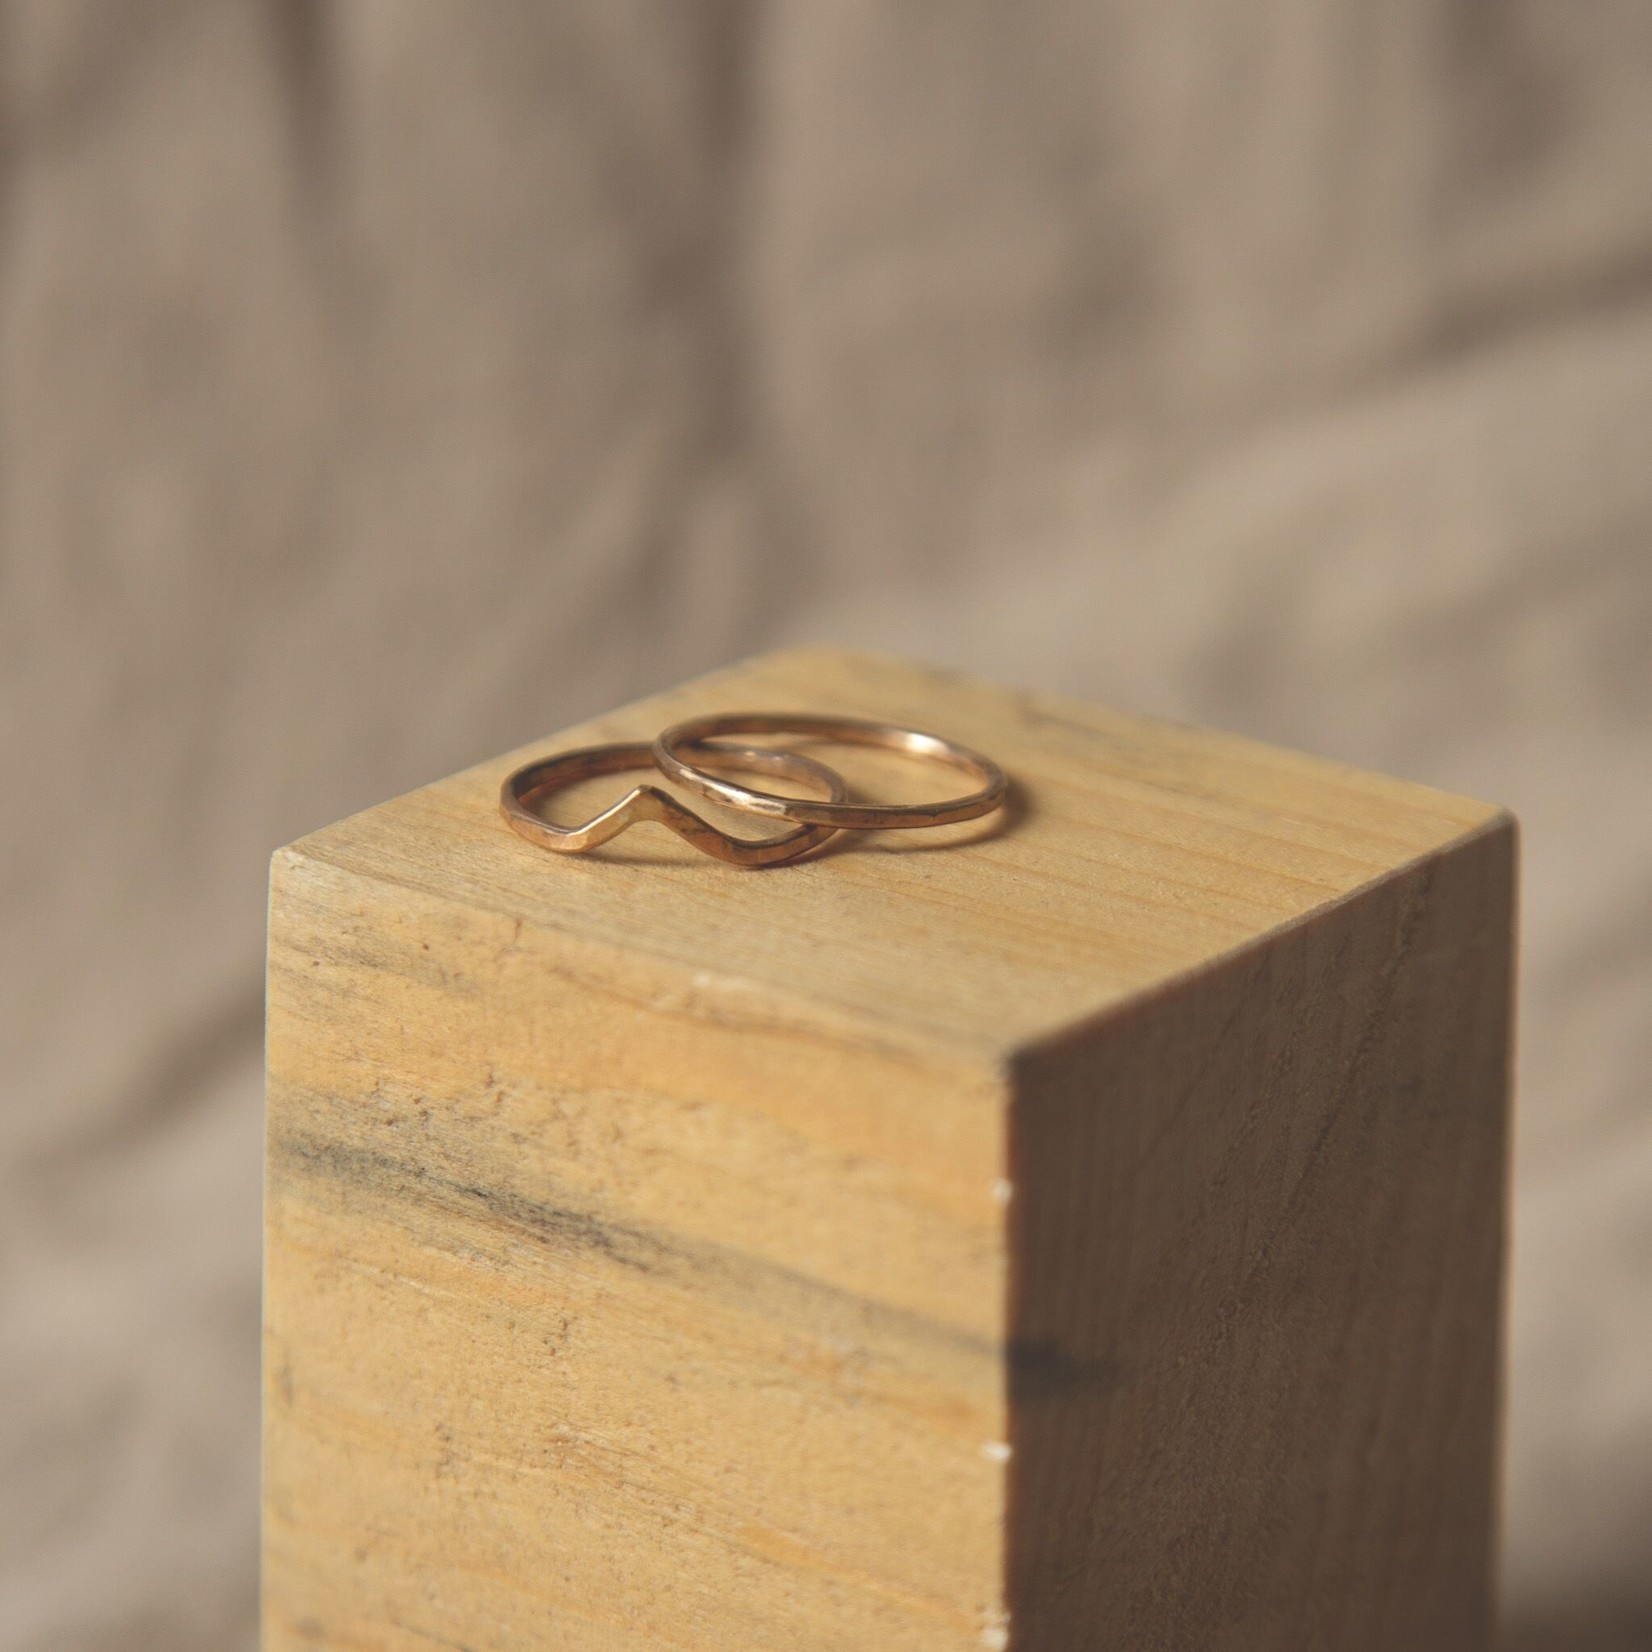 Lonewolf Collective Lonewolf Collective Thin Flat Stacker Ring 14K Gold Fill